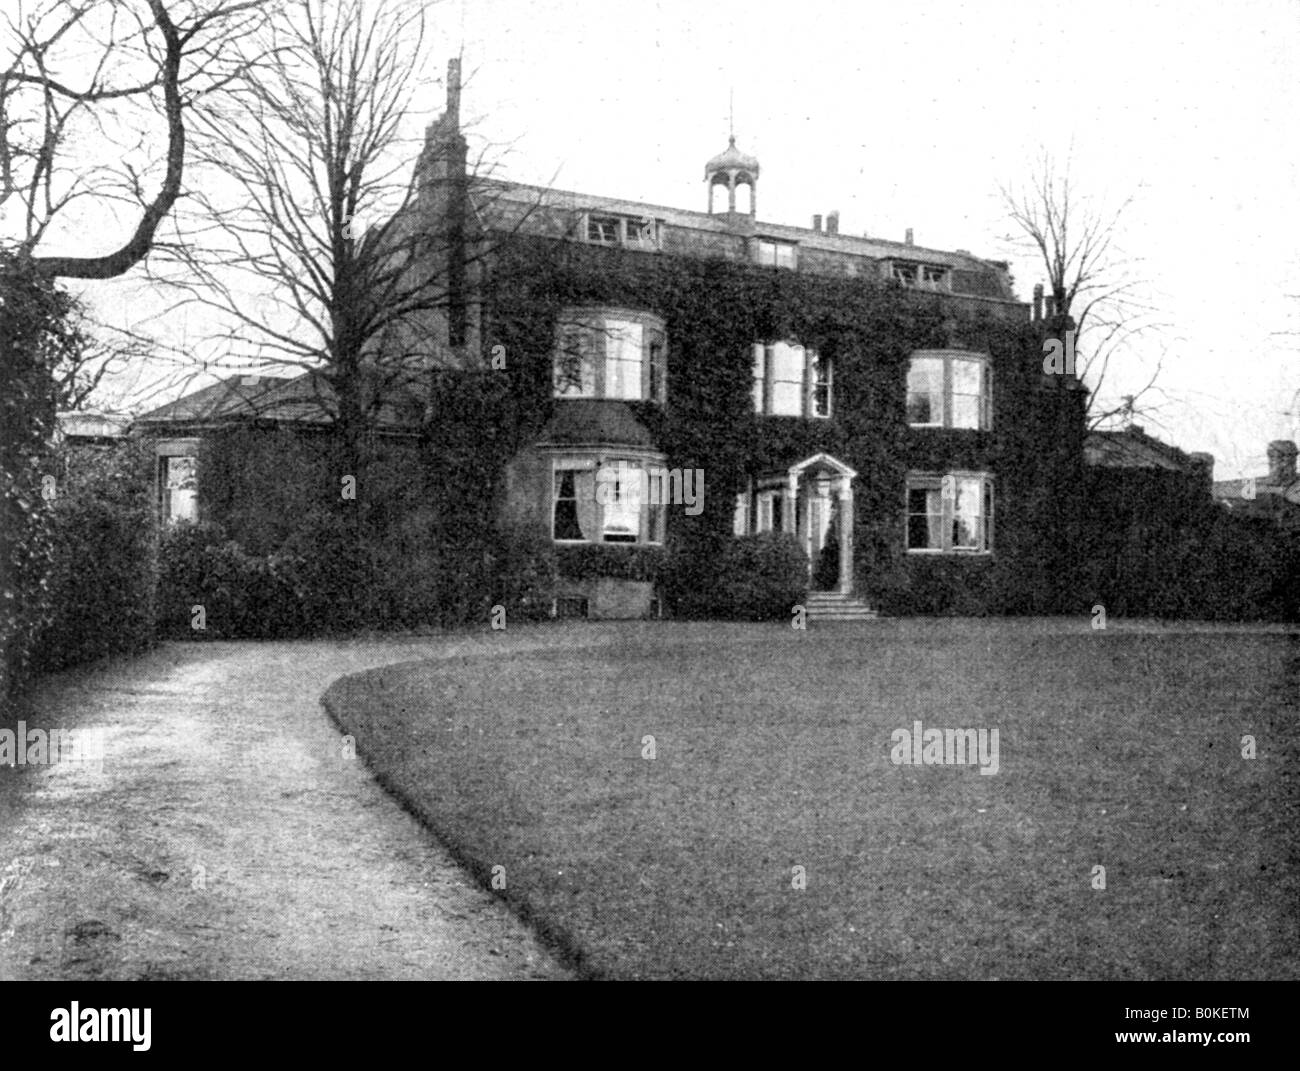 Gadshill, Near Rochester, Purchased by Dickens in 1856, (1923).Artist: Rischgitz Collection Stock Photo